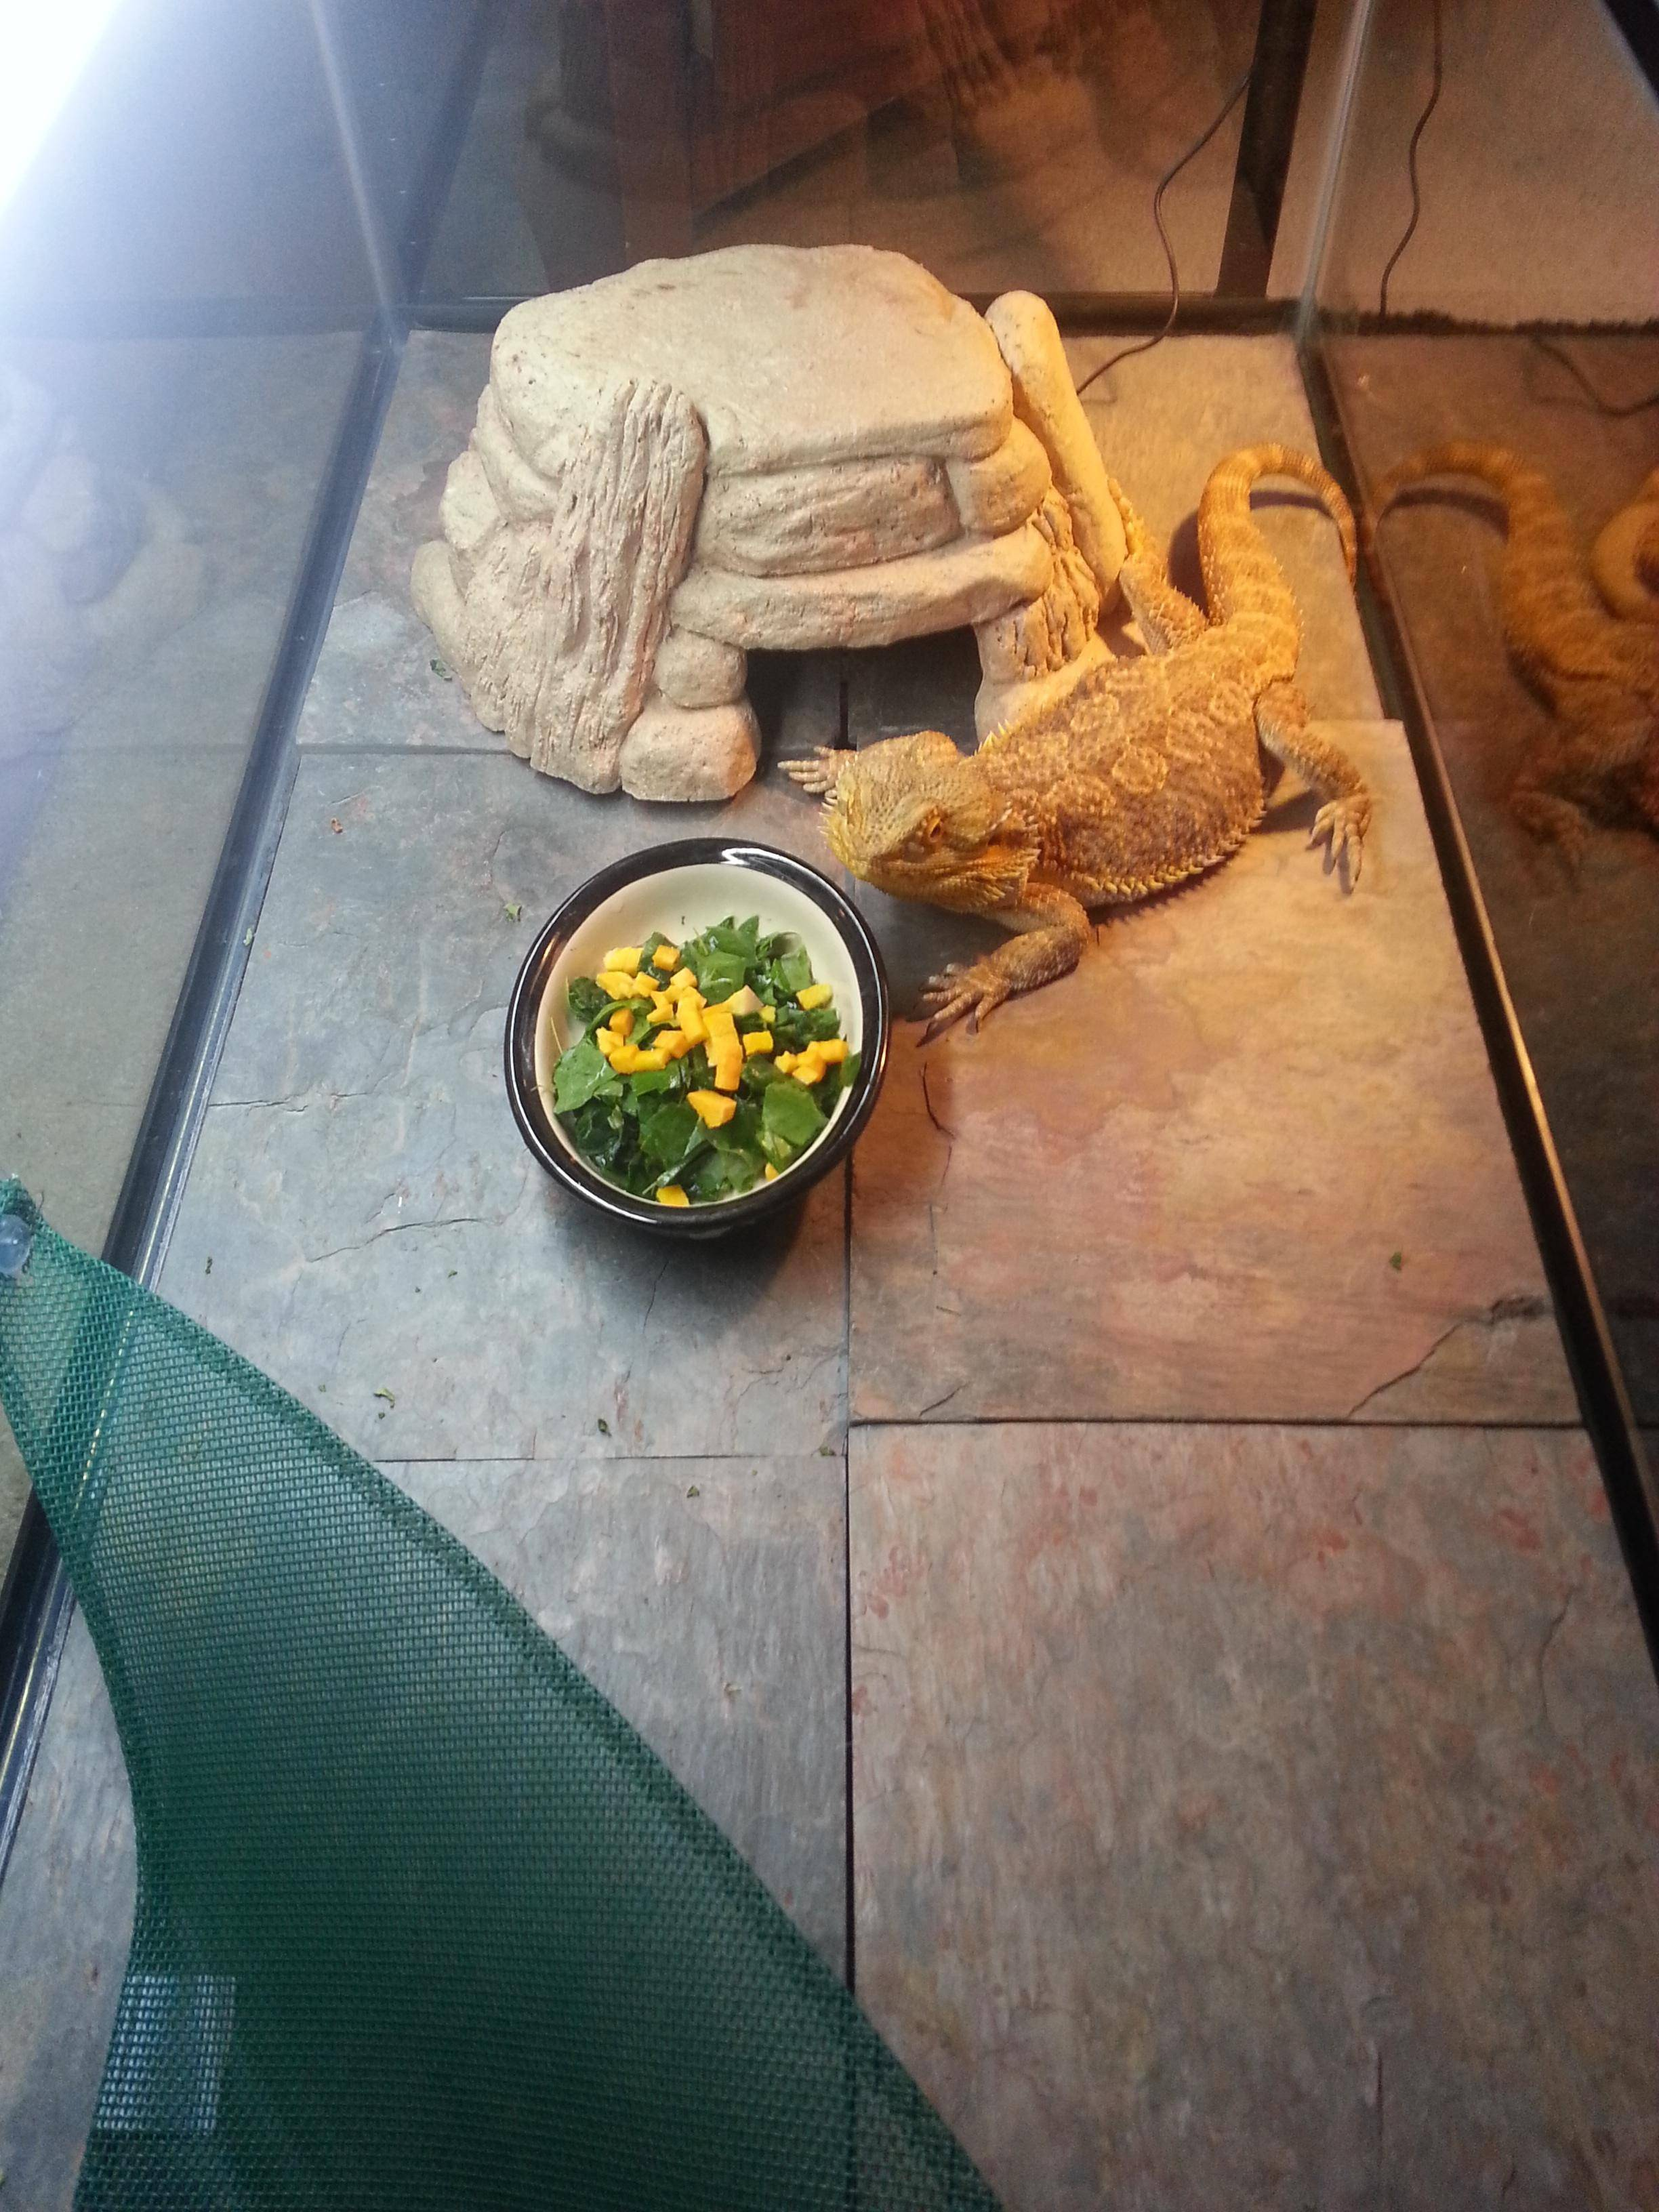 Upgrade Your Pets Private Accommodations With Slate Tiles